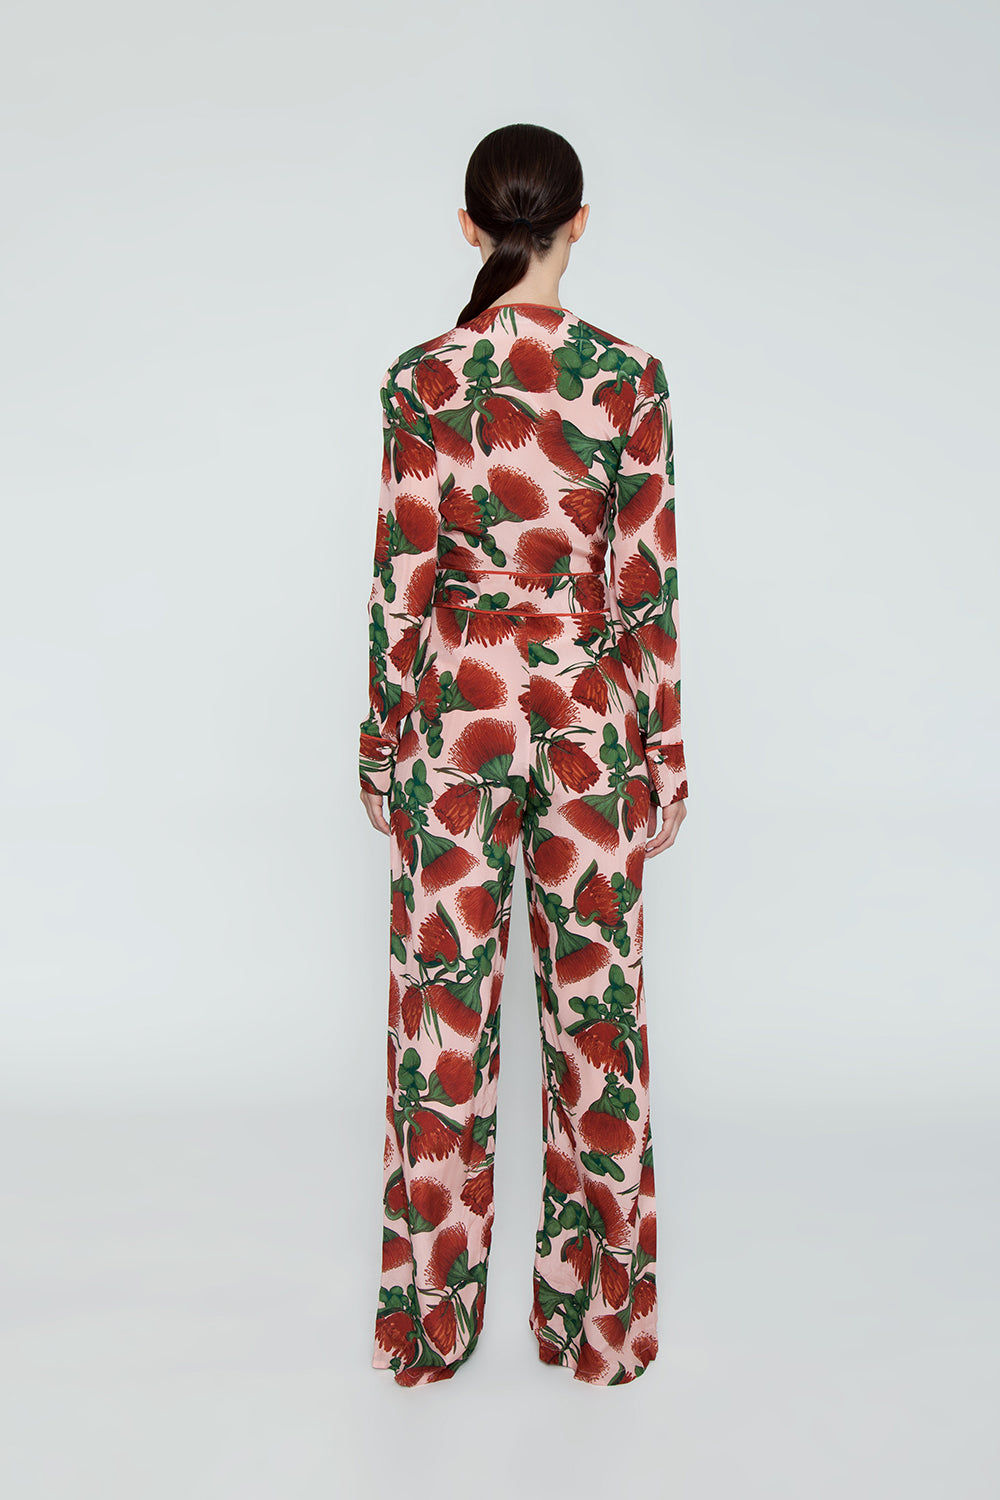 ADRIANA DEGREAS Silk Crepe De Chine Knot Detail Jumpsuit - Fiore Rose Print Jumpsuit | Fiore Rose Print|Adriana Degreas Silk Crepe De Chine Knot Detail Jumpsuit - Fiore Rose Print  Long sleeve jumpsuit Plunging neckline  Front tie detail  Wide leg pants Back View